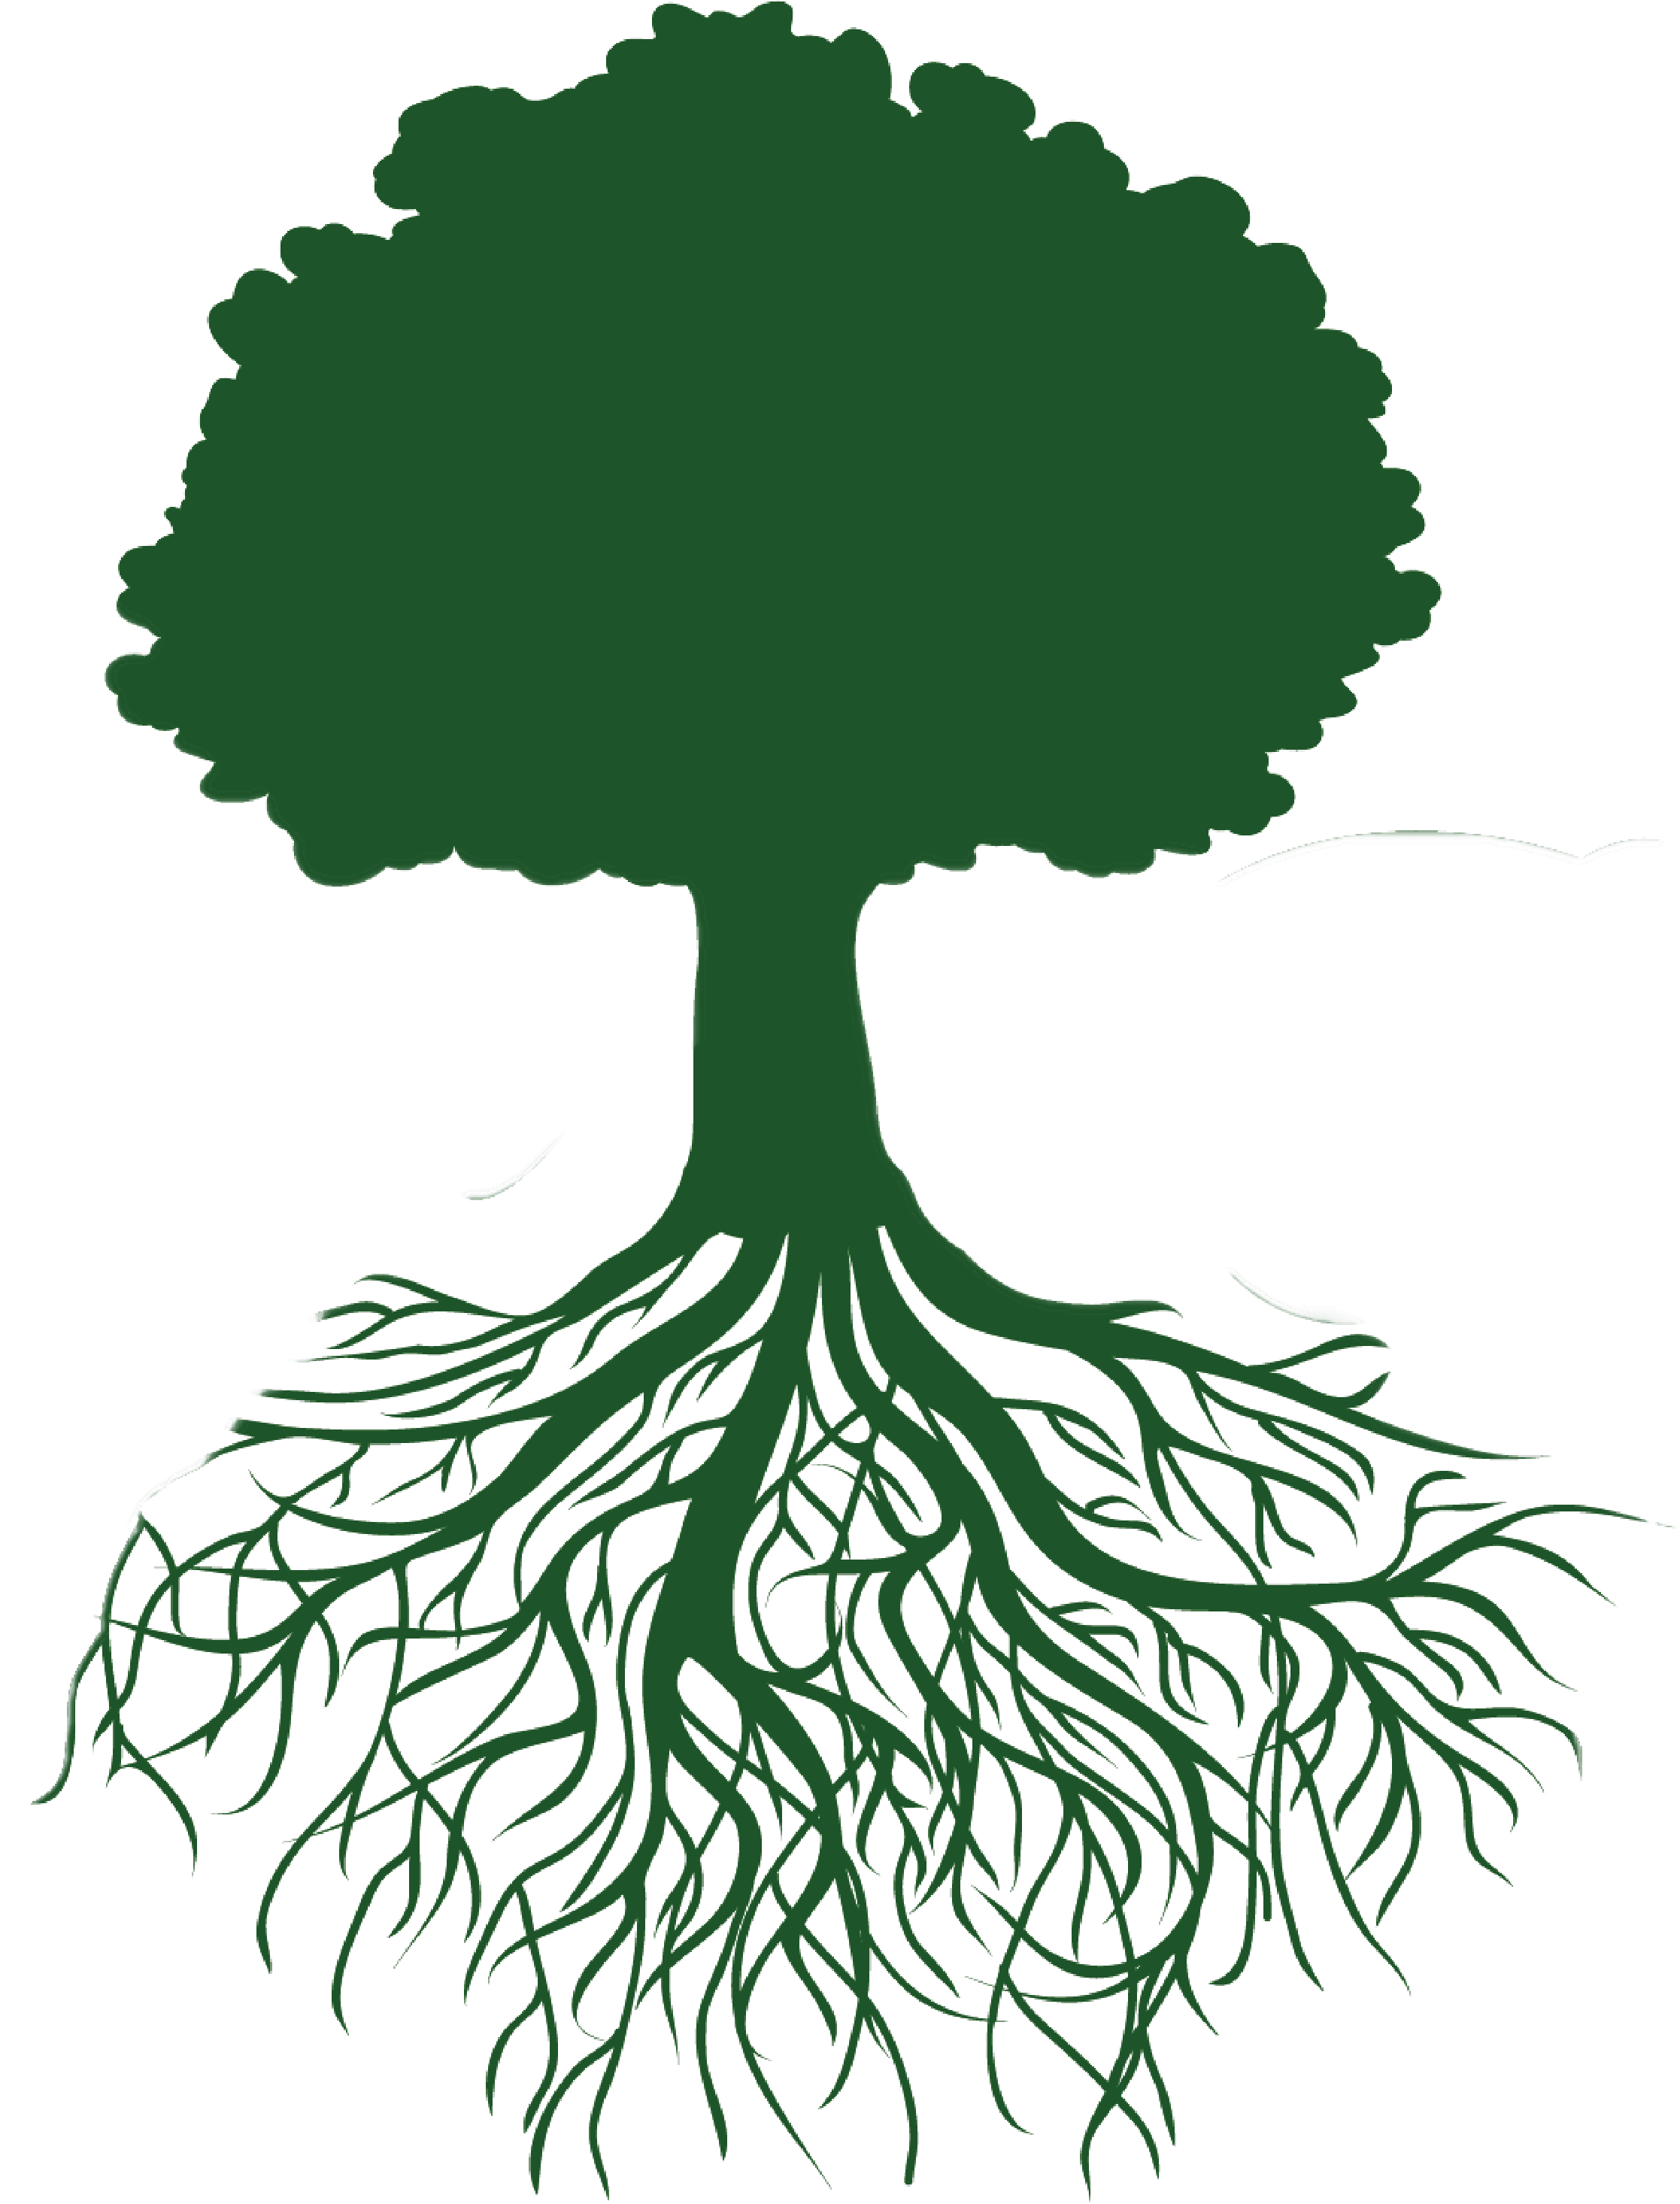 Roots illustration clipart images gallery for free download.